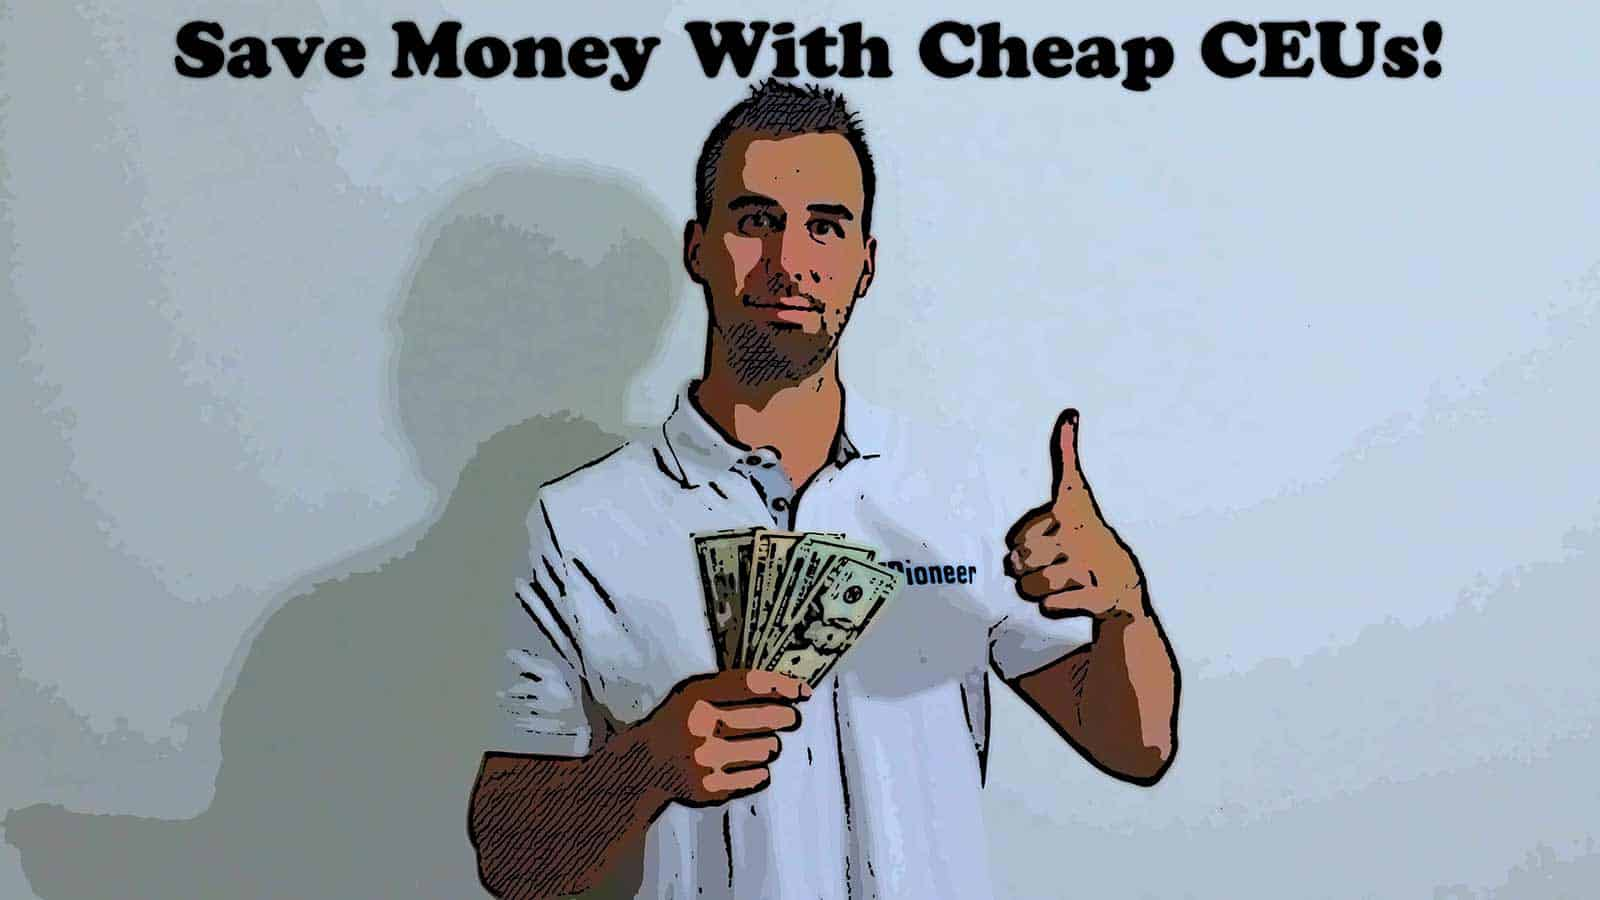 Cheap CEUs and save money